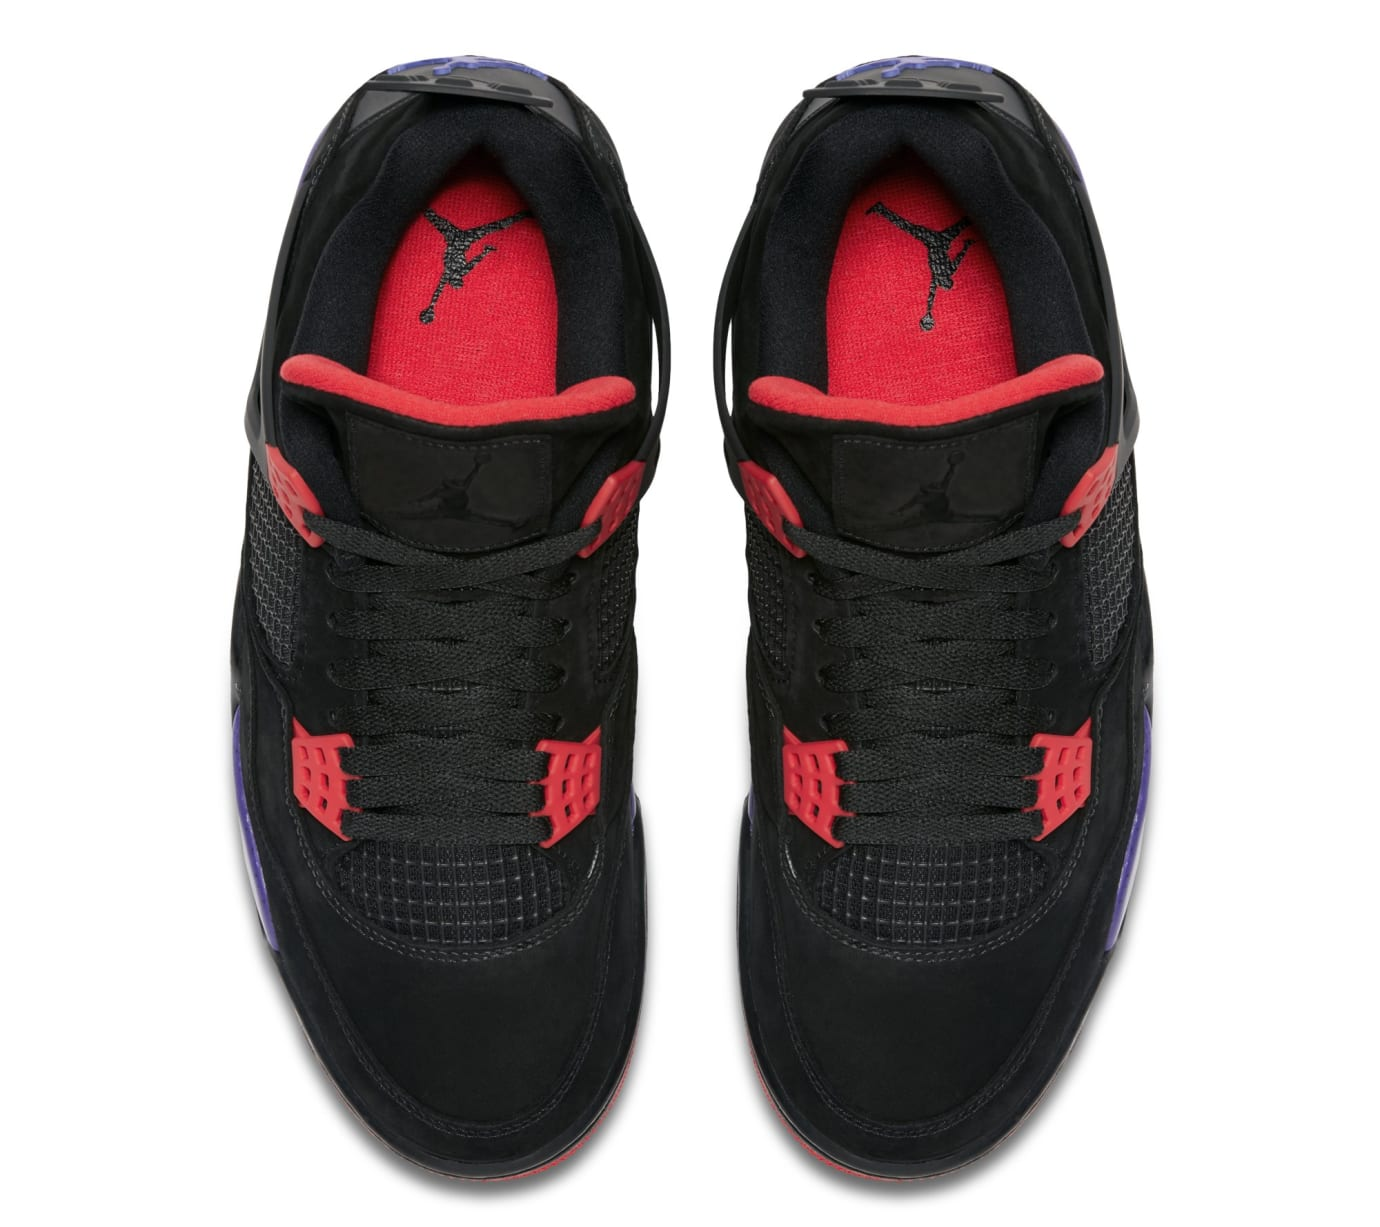 super popular 87641 feedc Image via Nike Air Jordan 4  Raptors  AQ3816-065 (Top)